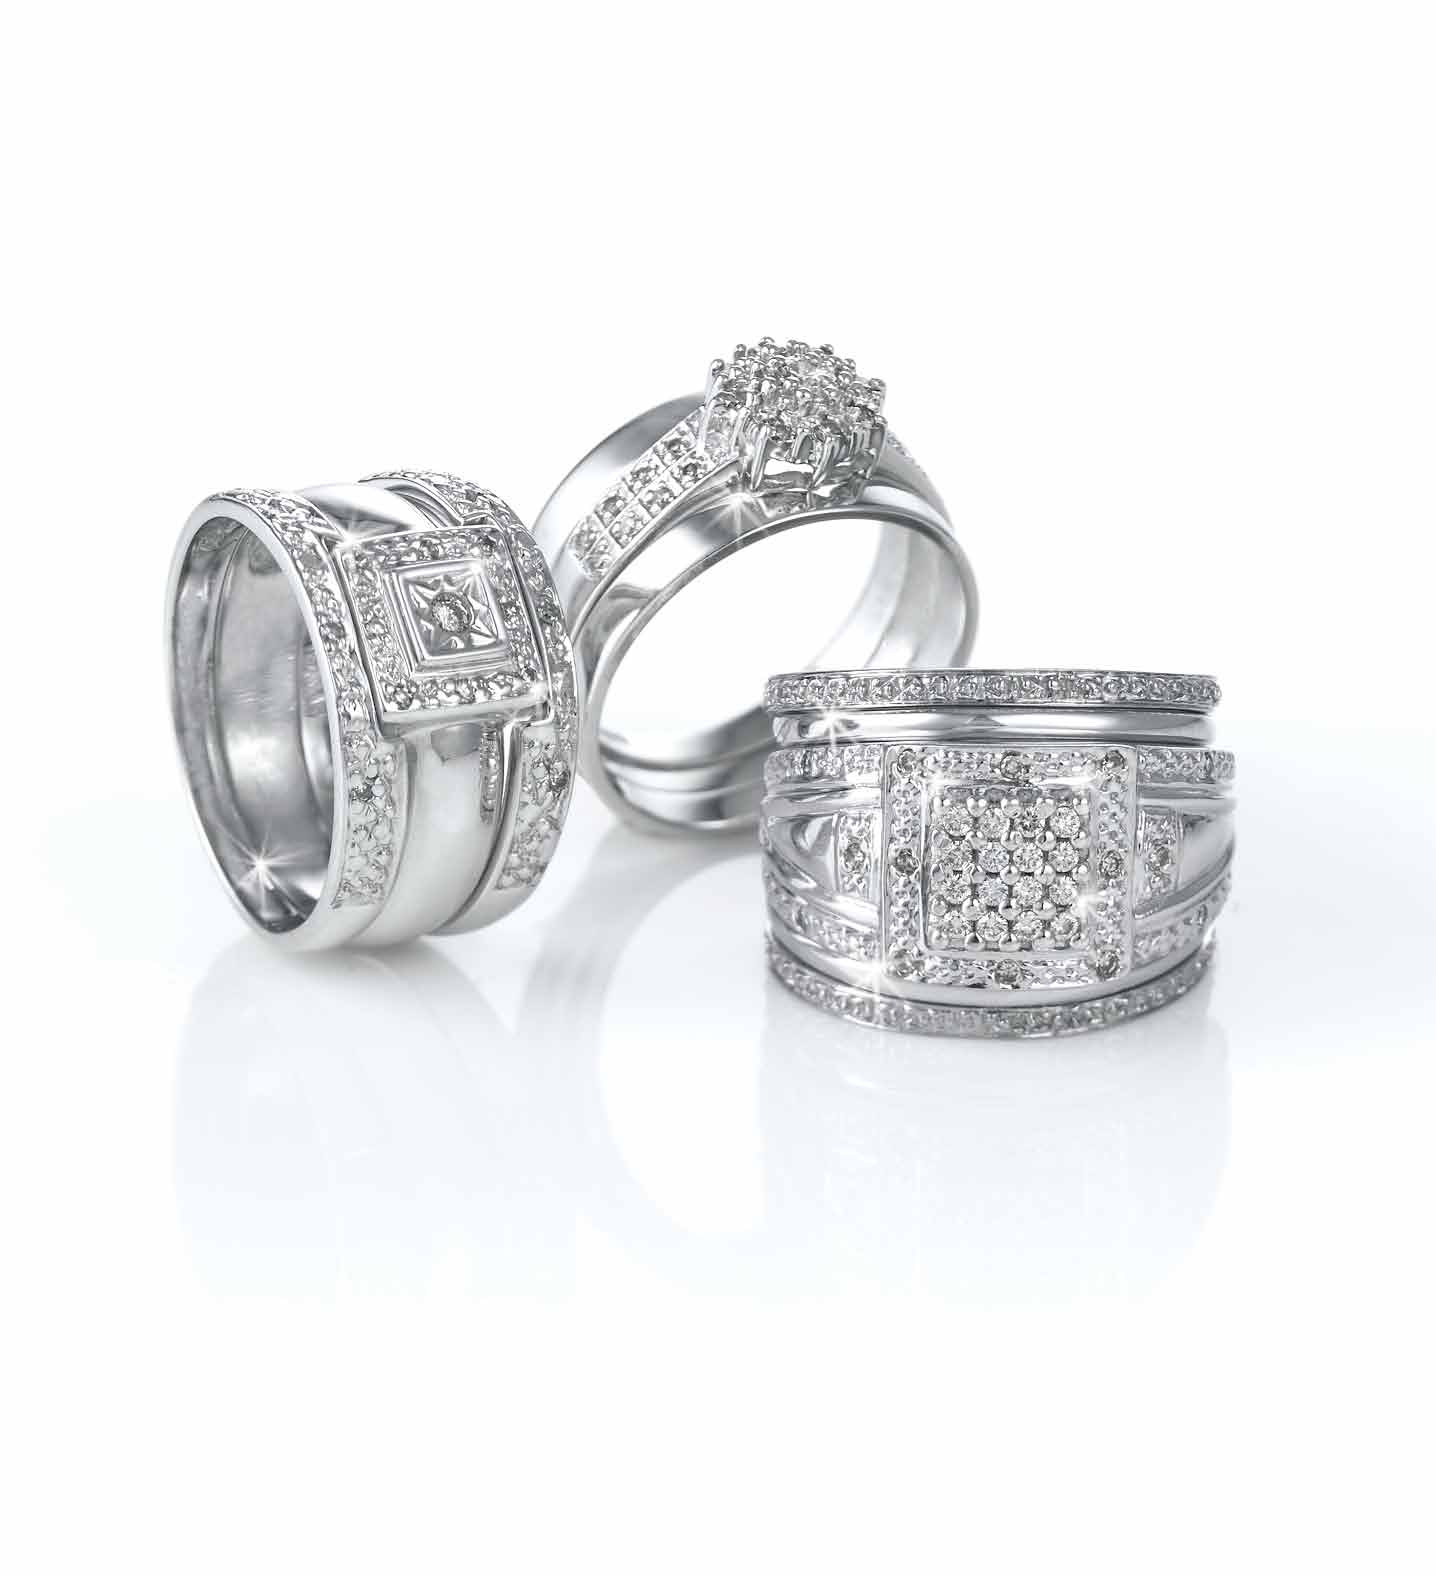 mens wedding rings south africa prices wedding band prices 9ct Diamond Wedding Rings fltr R4 00 R5 00 R6